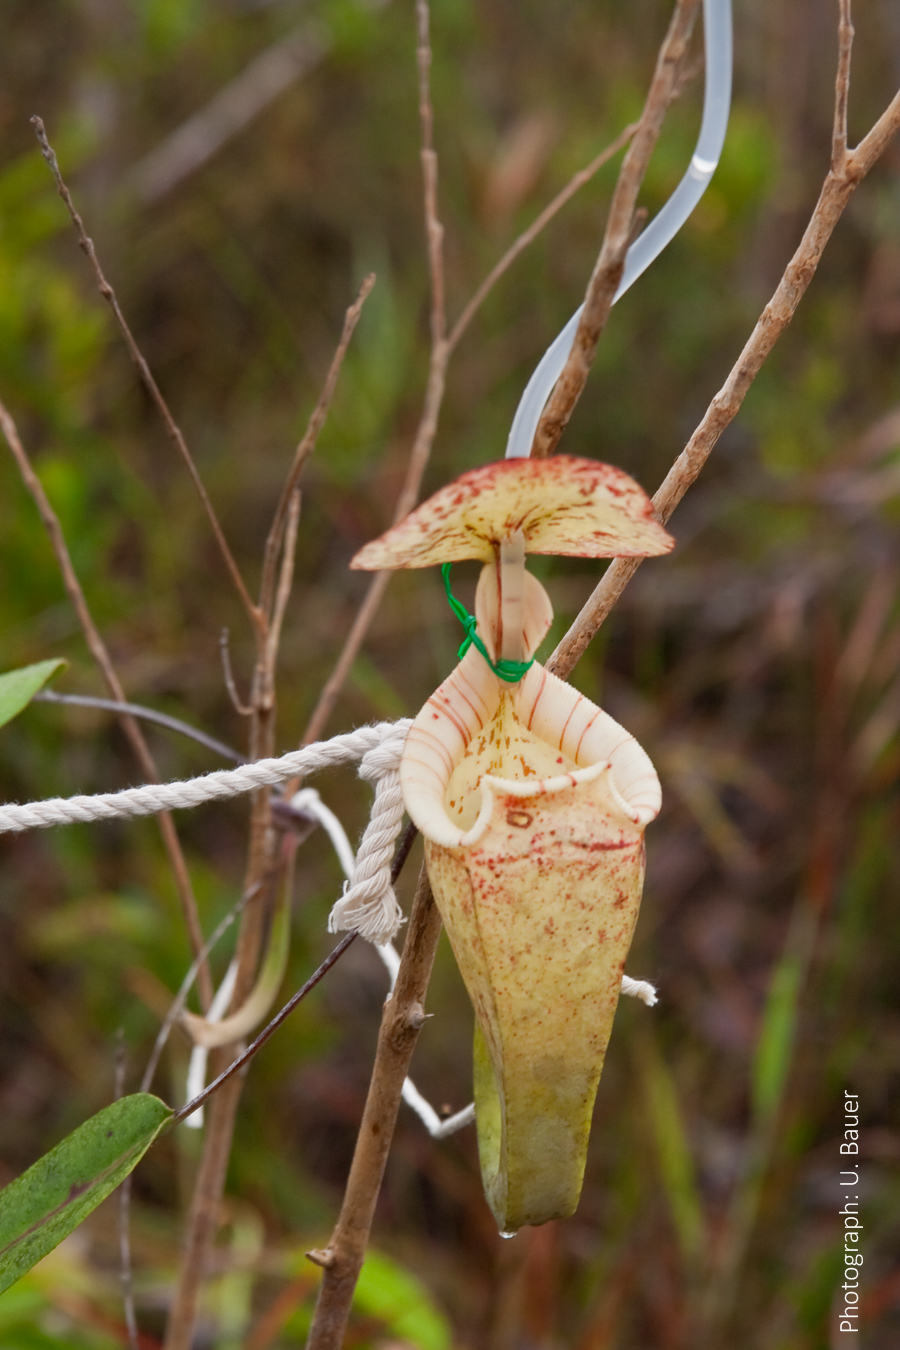 Carnivorous Pitcher Plant Catches Ants by Changing Slipperiness of Peristome – Ulrike Bauer (2015)